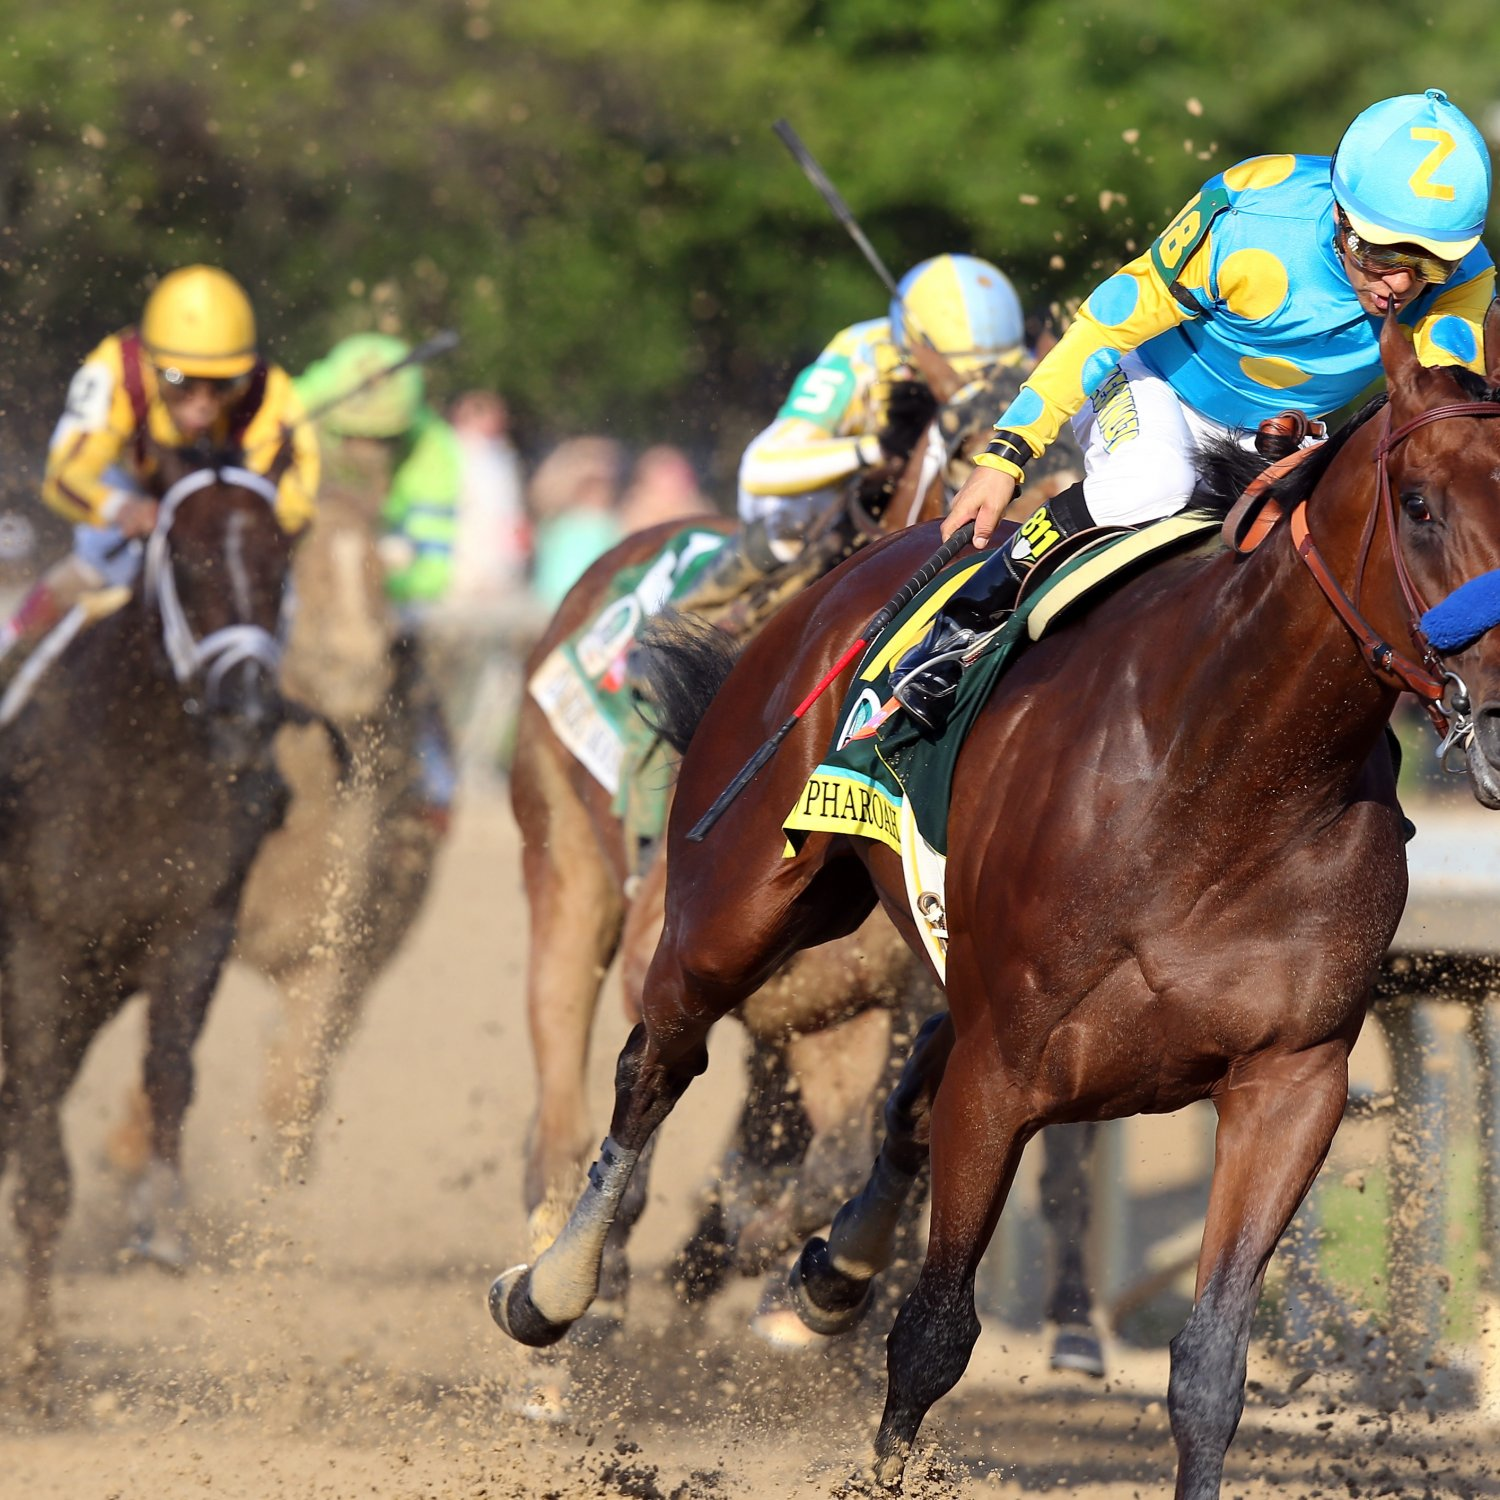 Kentucky Derby 2015 Payout: Prize Money Purse, Order Of